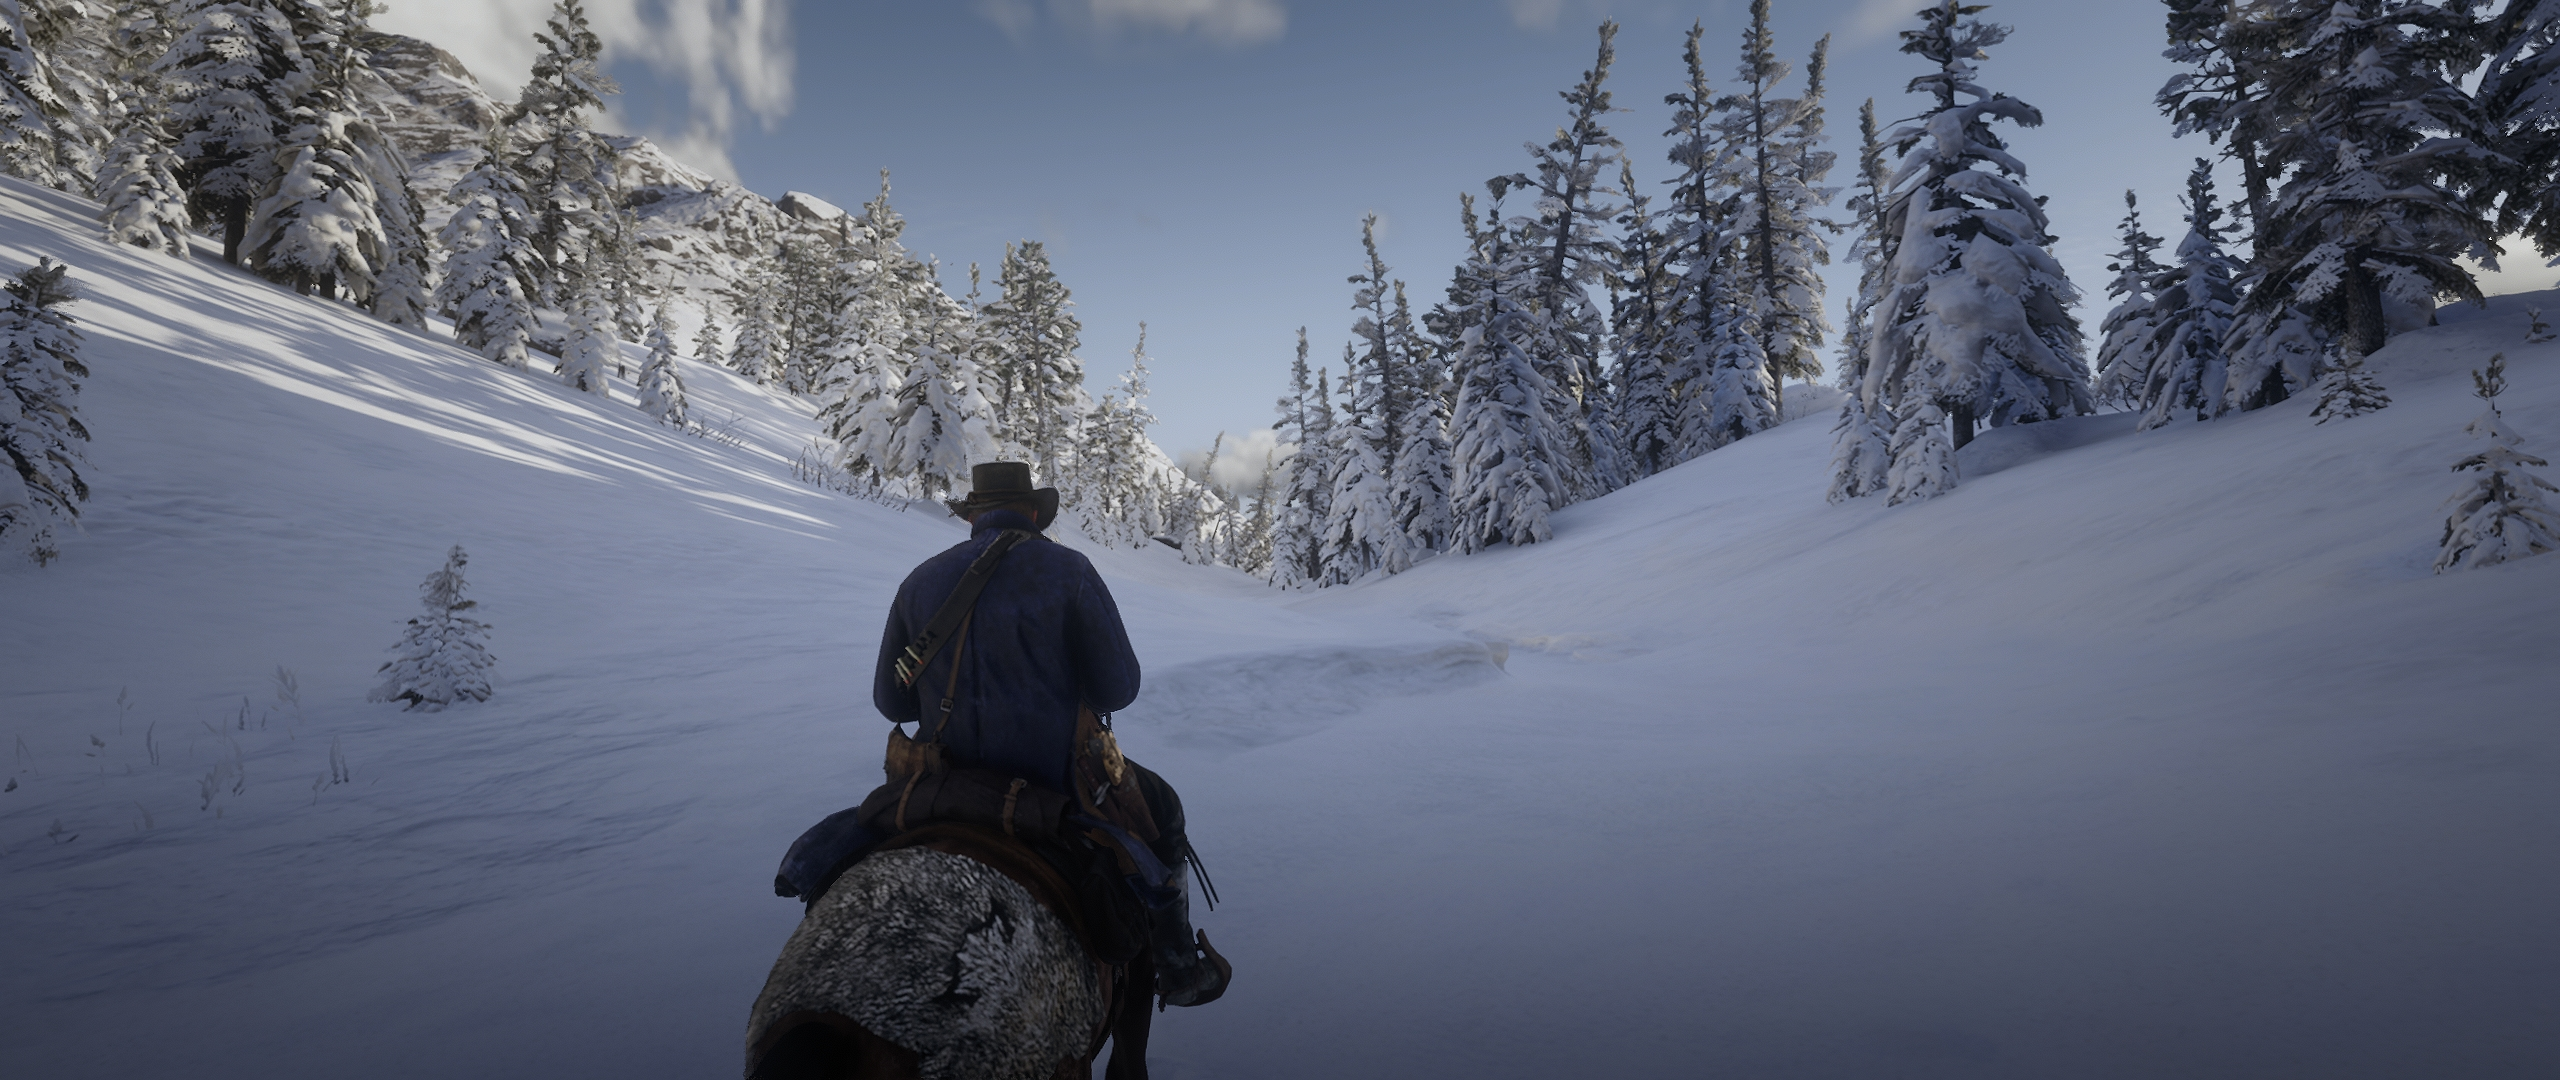 снежок - Red Dead Redemption 2